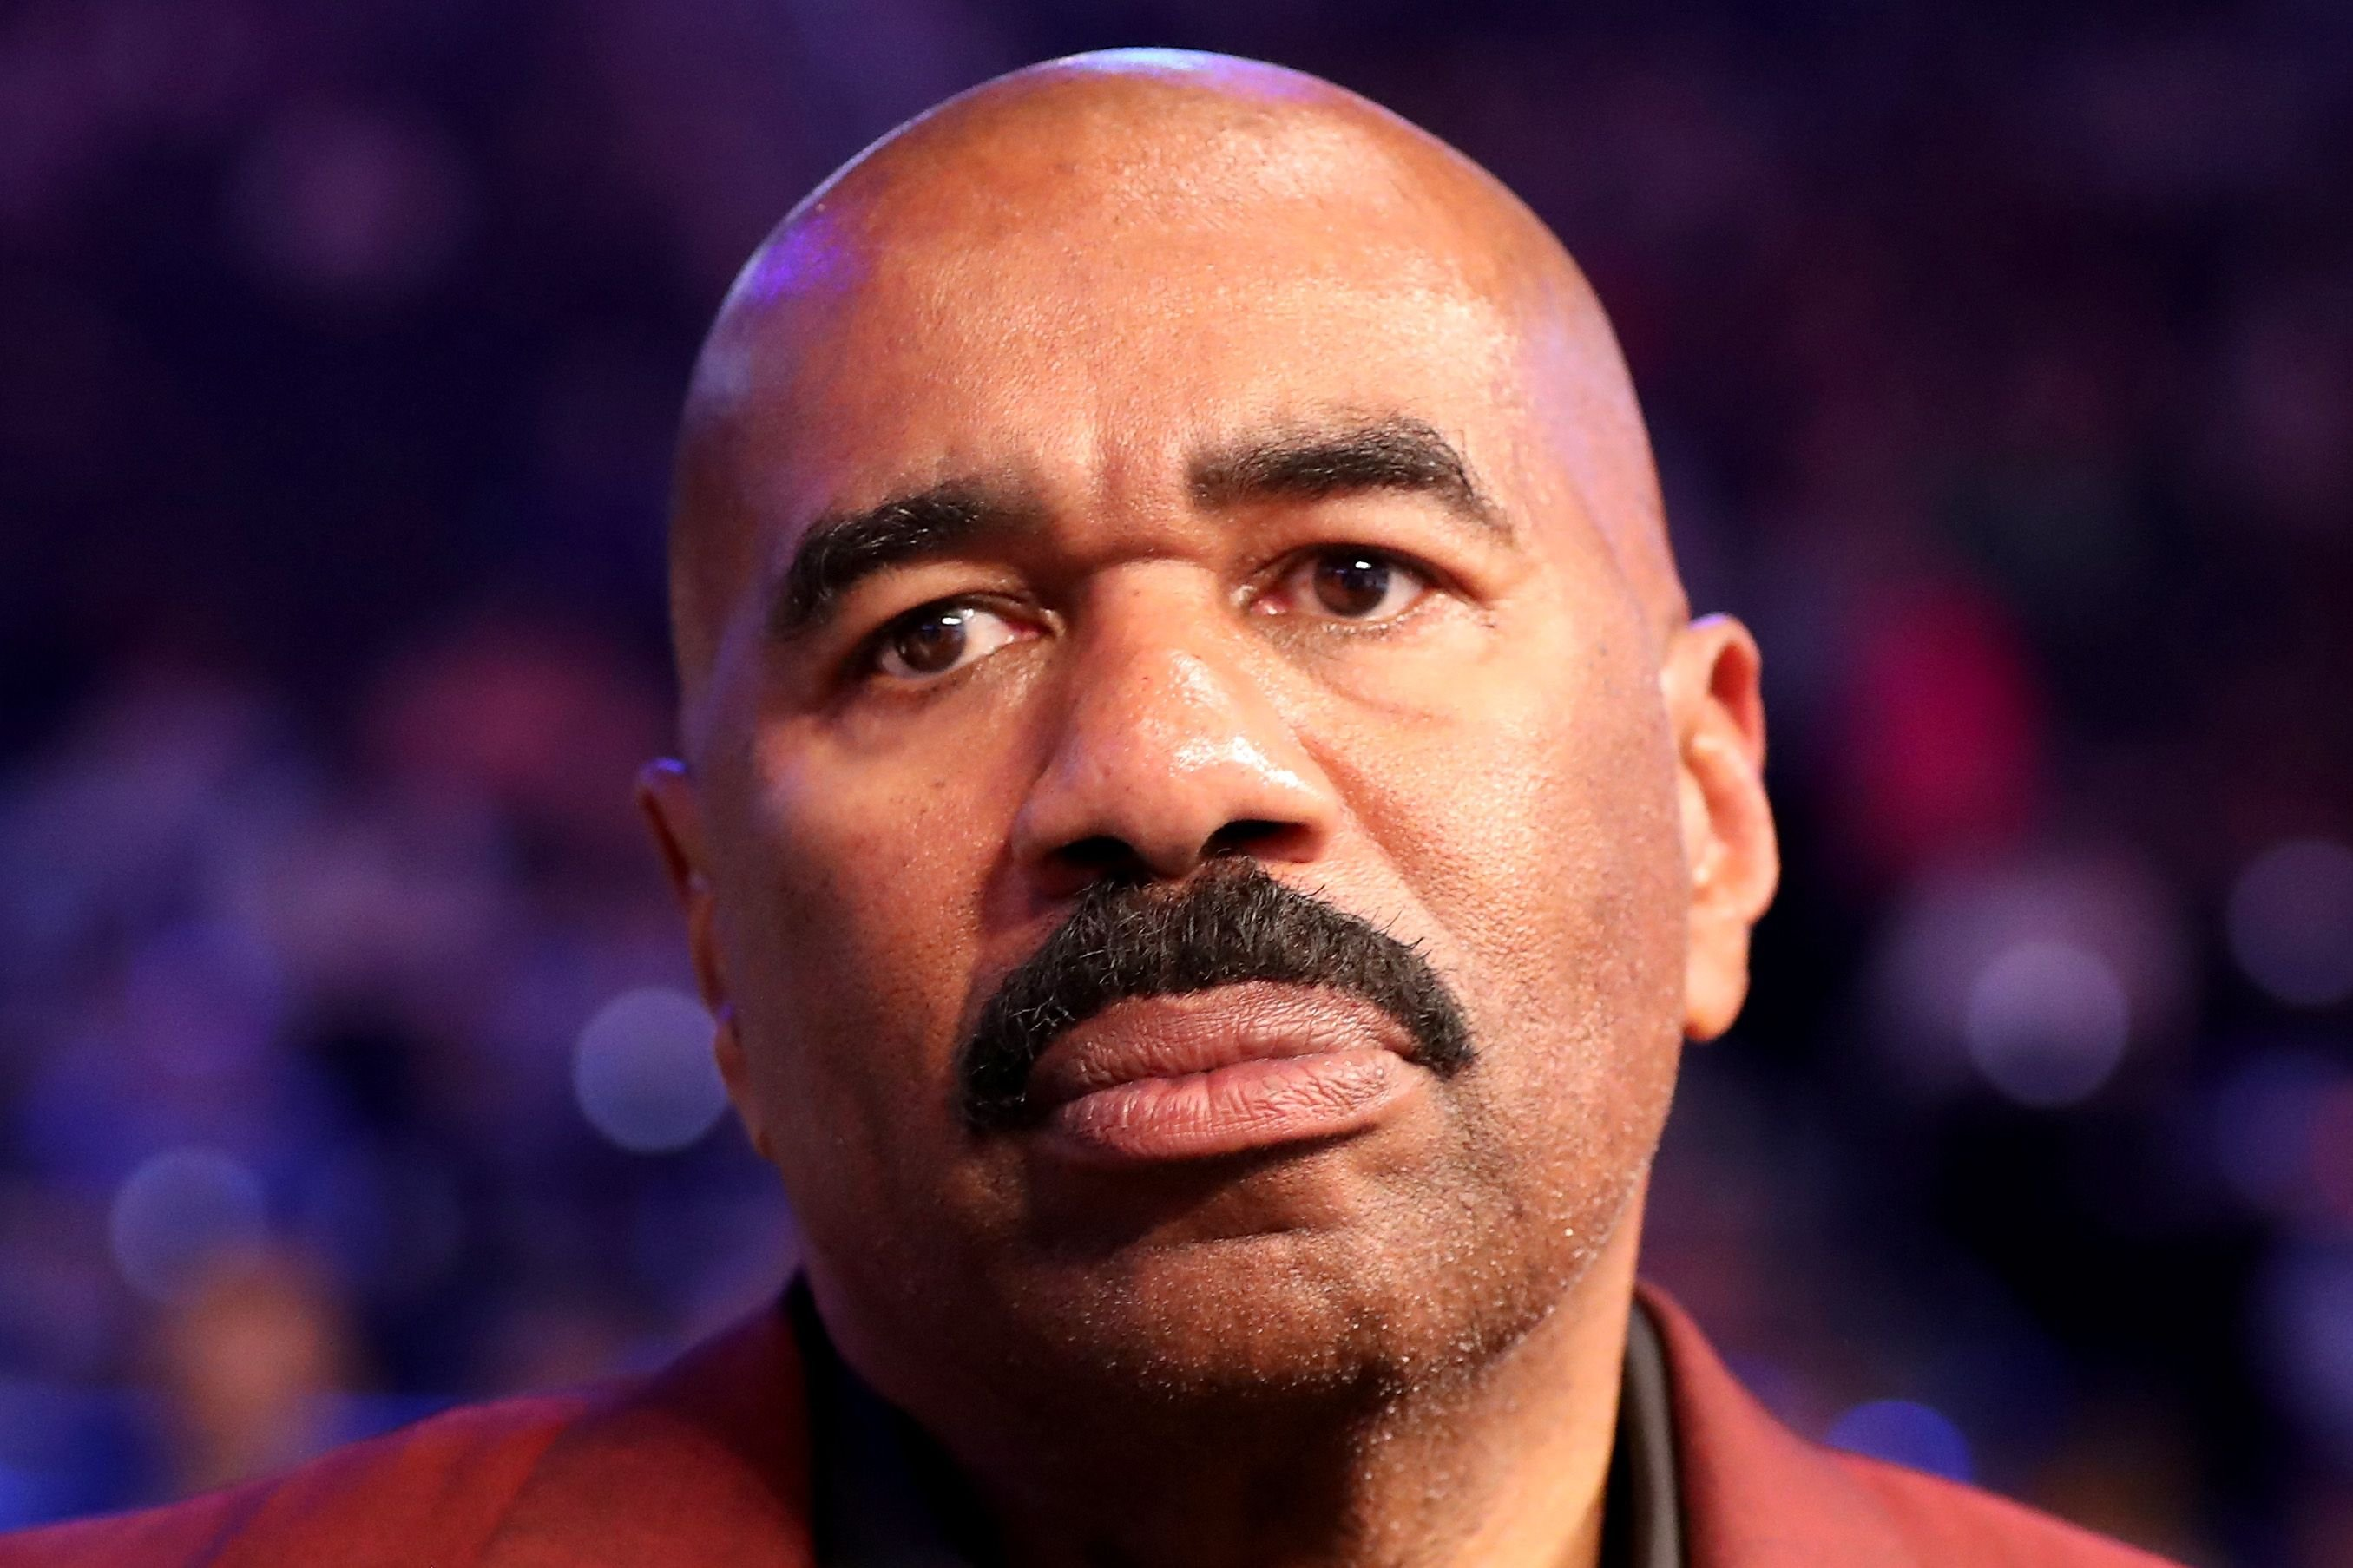 Steve Harvey at a super welterweight boxing match on August 26, 2017 in Las Vegas. | Photo: Getty Images